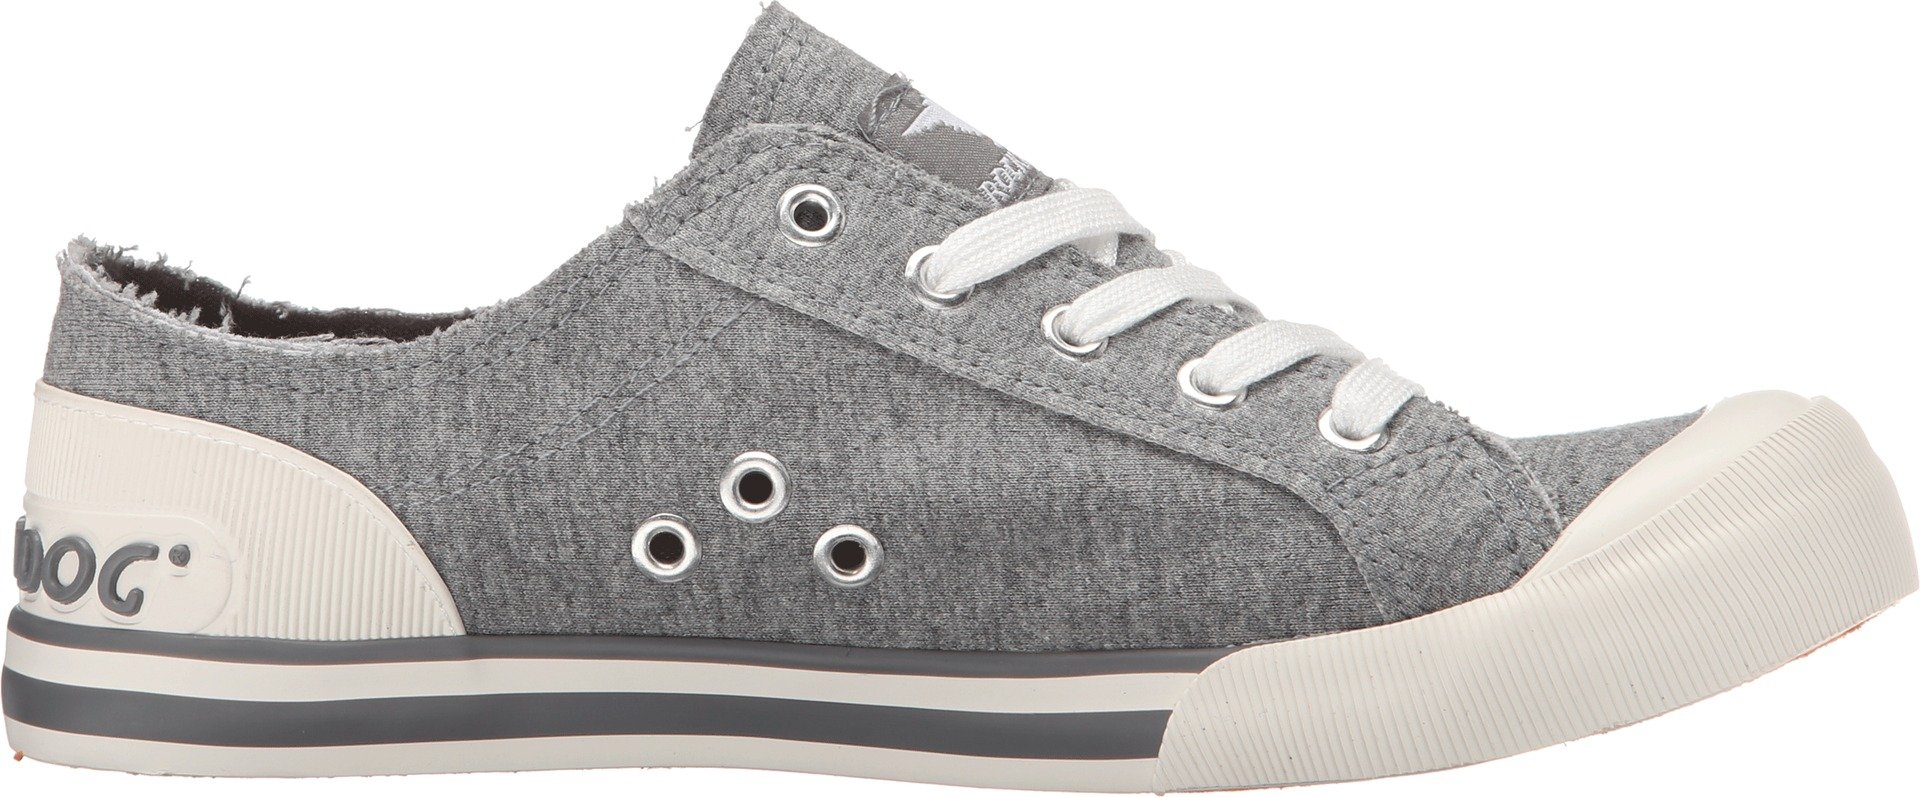 Rocket Dog Women's Jazzin Summer Jersey Cotton Sneaker, Grey, 7 M US